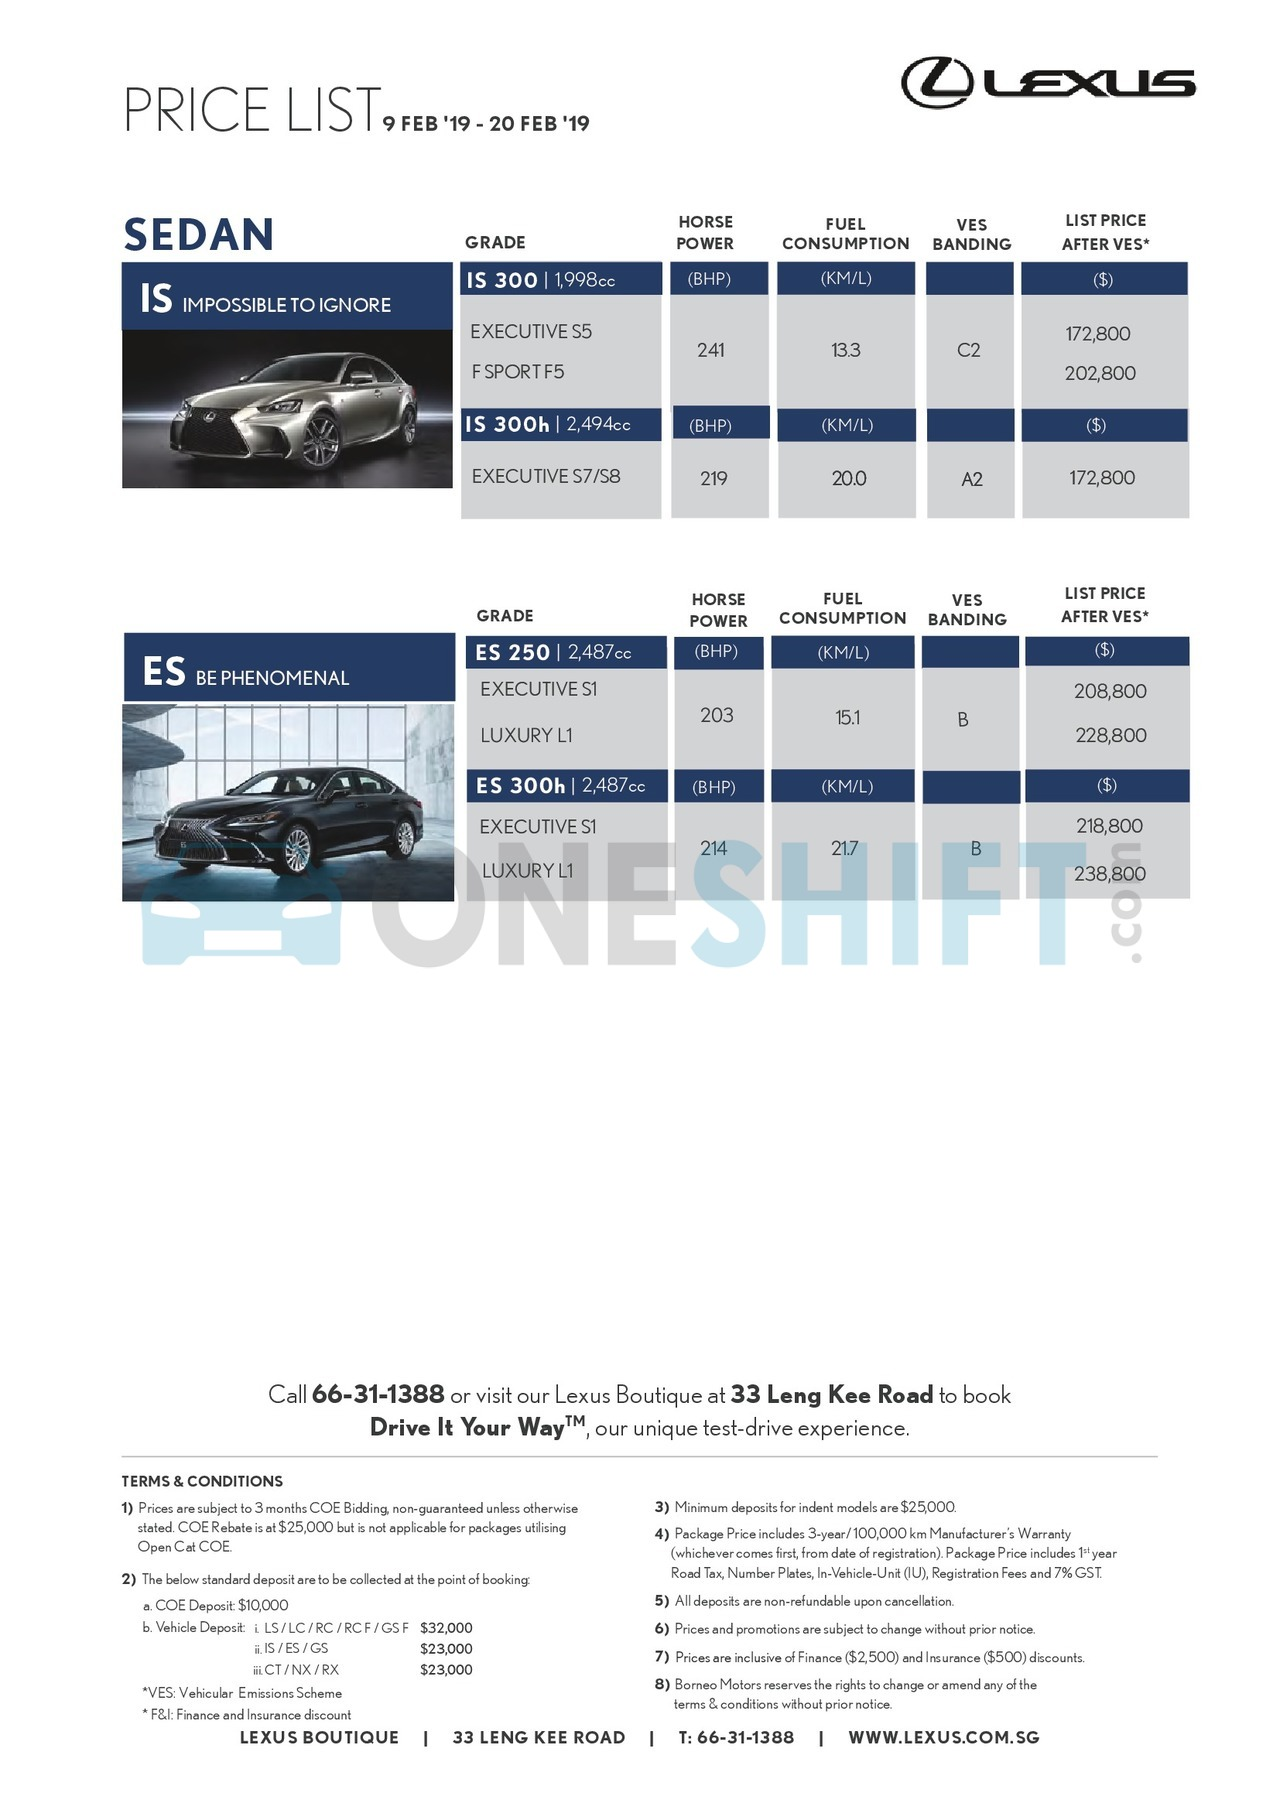 lexus Price List 2-11-2019 Page 1